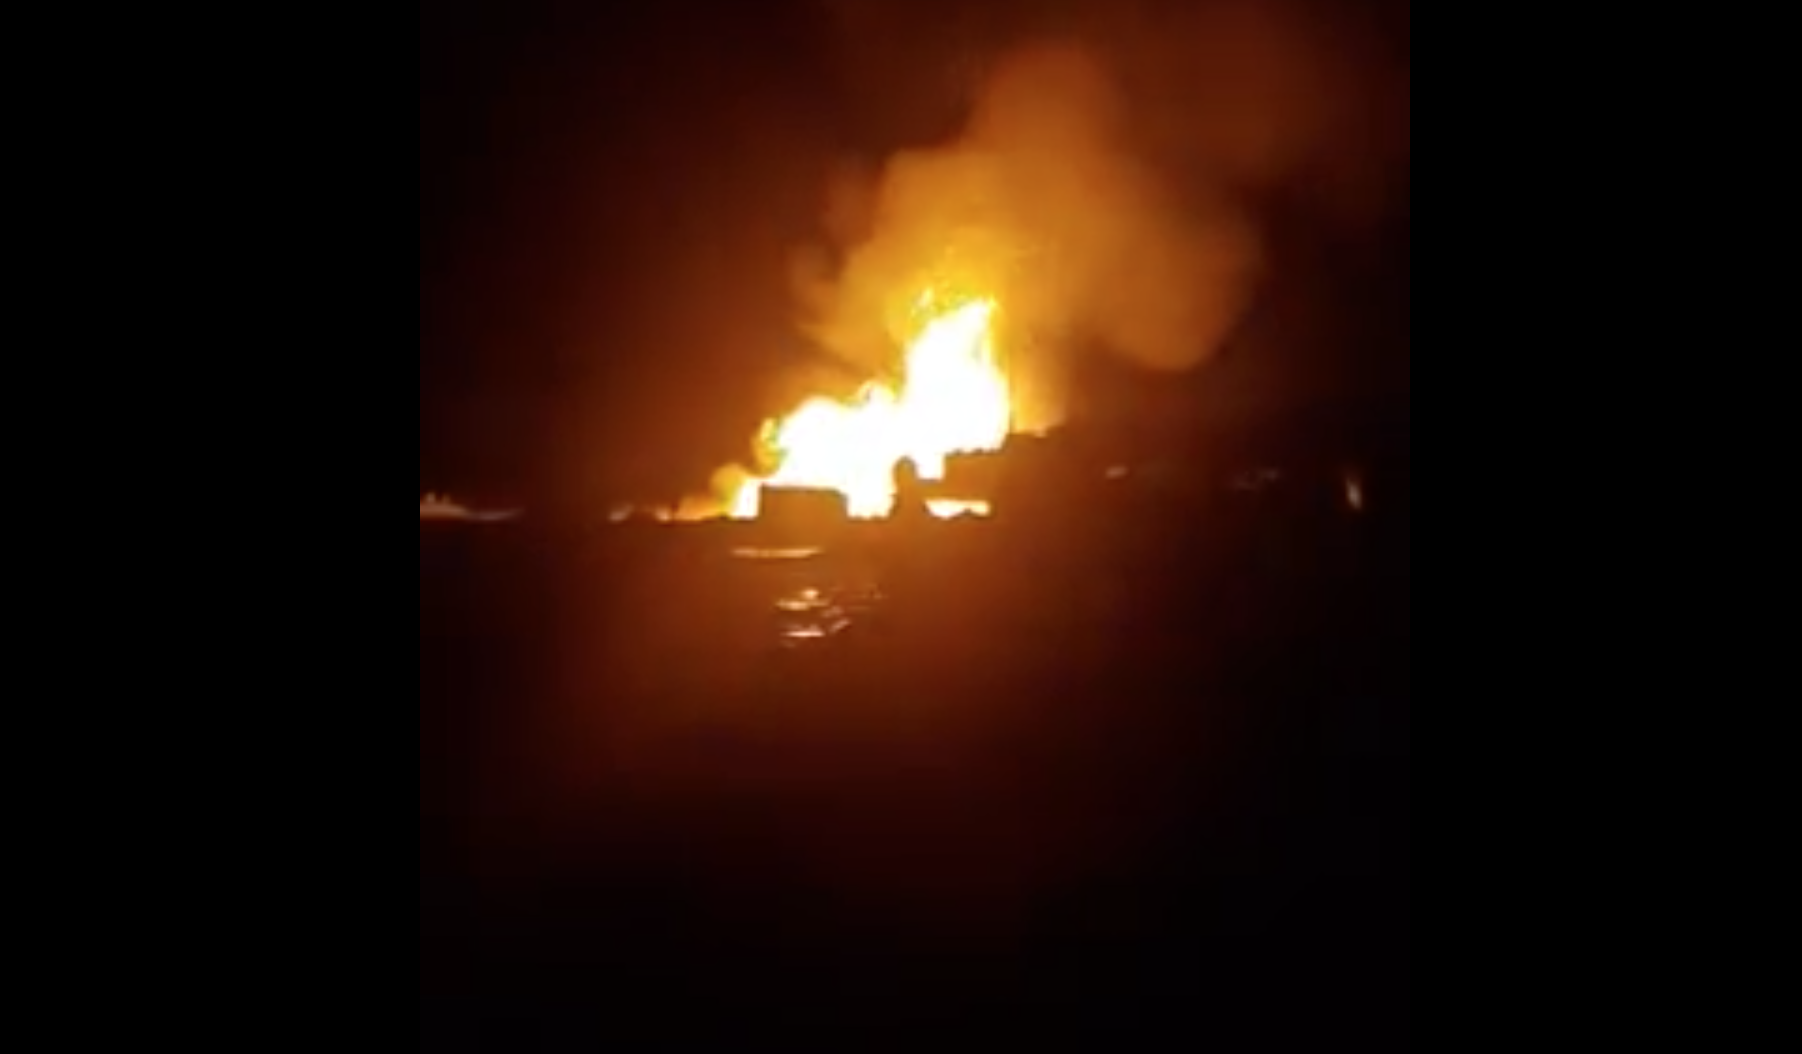 Nighttime footage of the fire captured on a phone camera. (Photo: Screengrab of video posted on Lada.kz website)